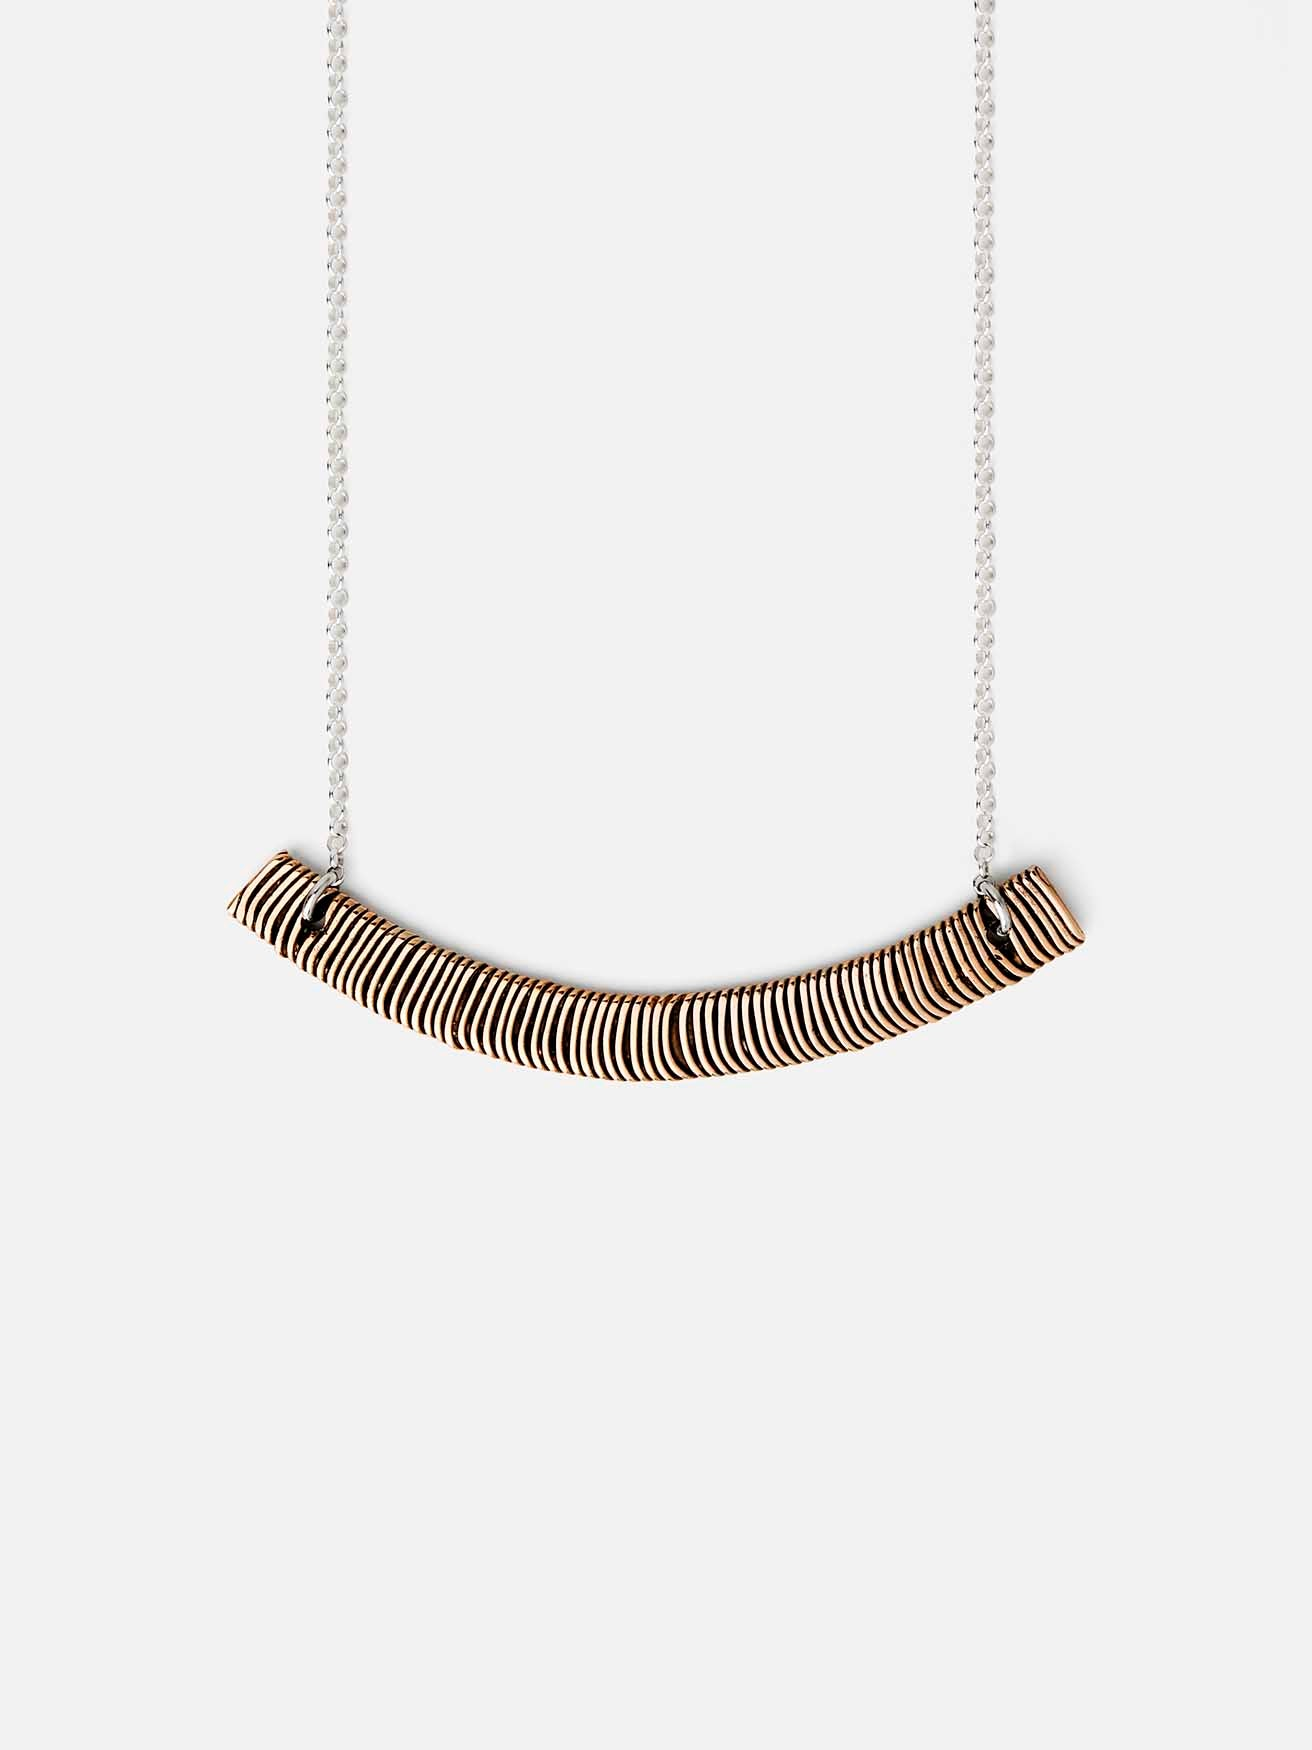 Arc Necklace, bronze